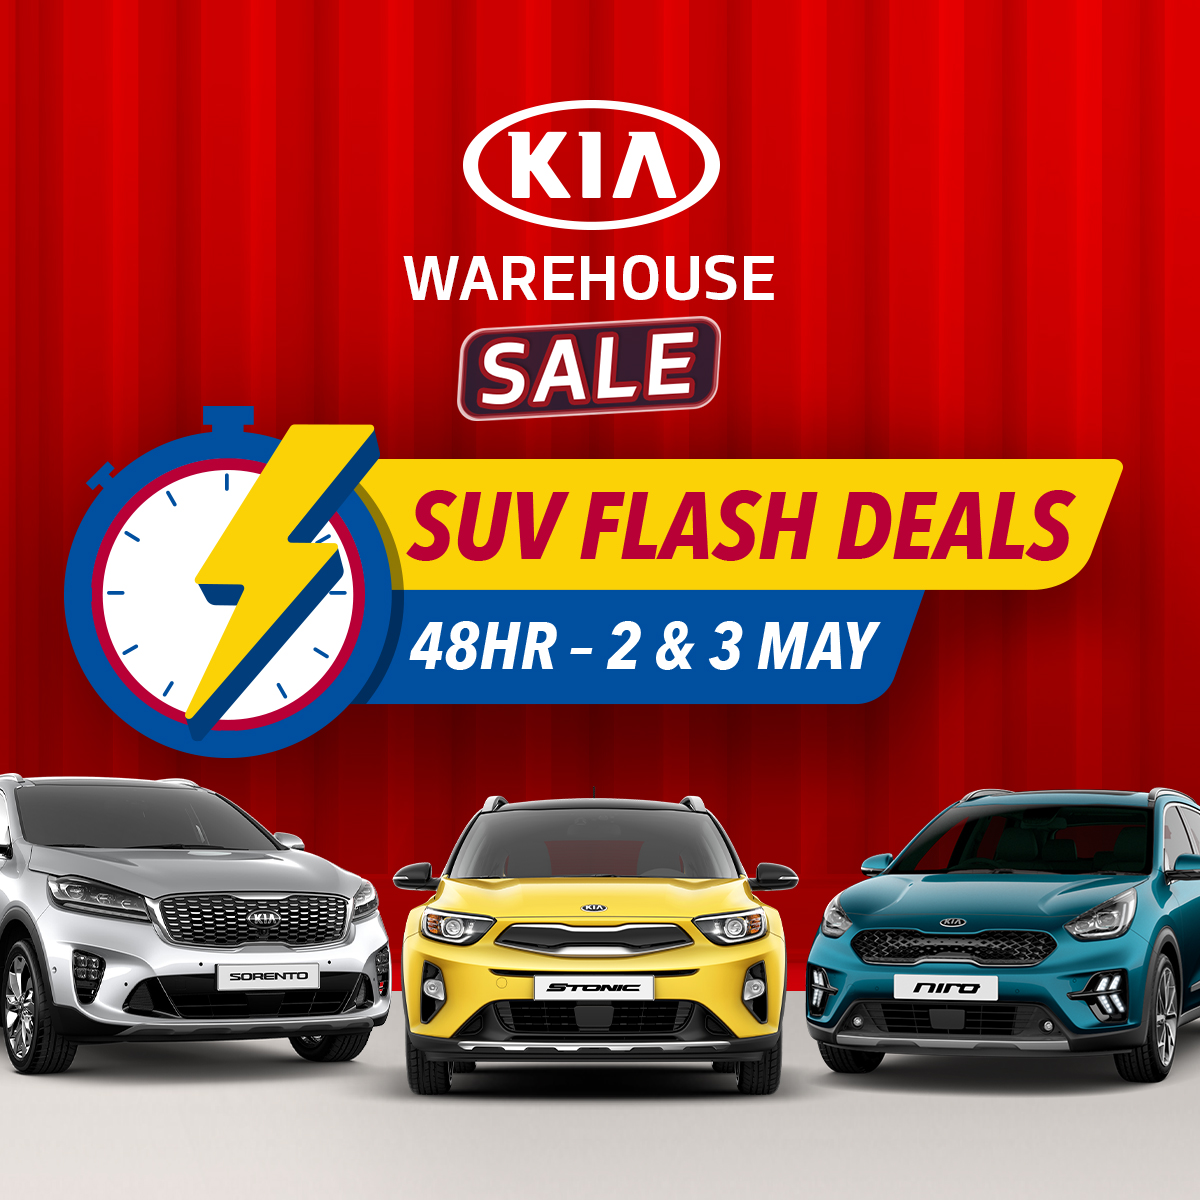 car dealer kia online deals